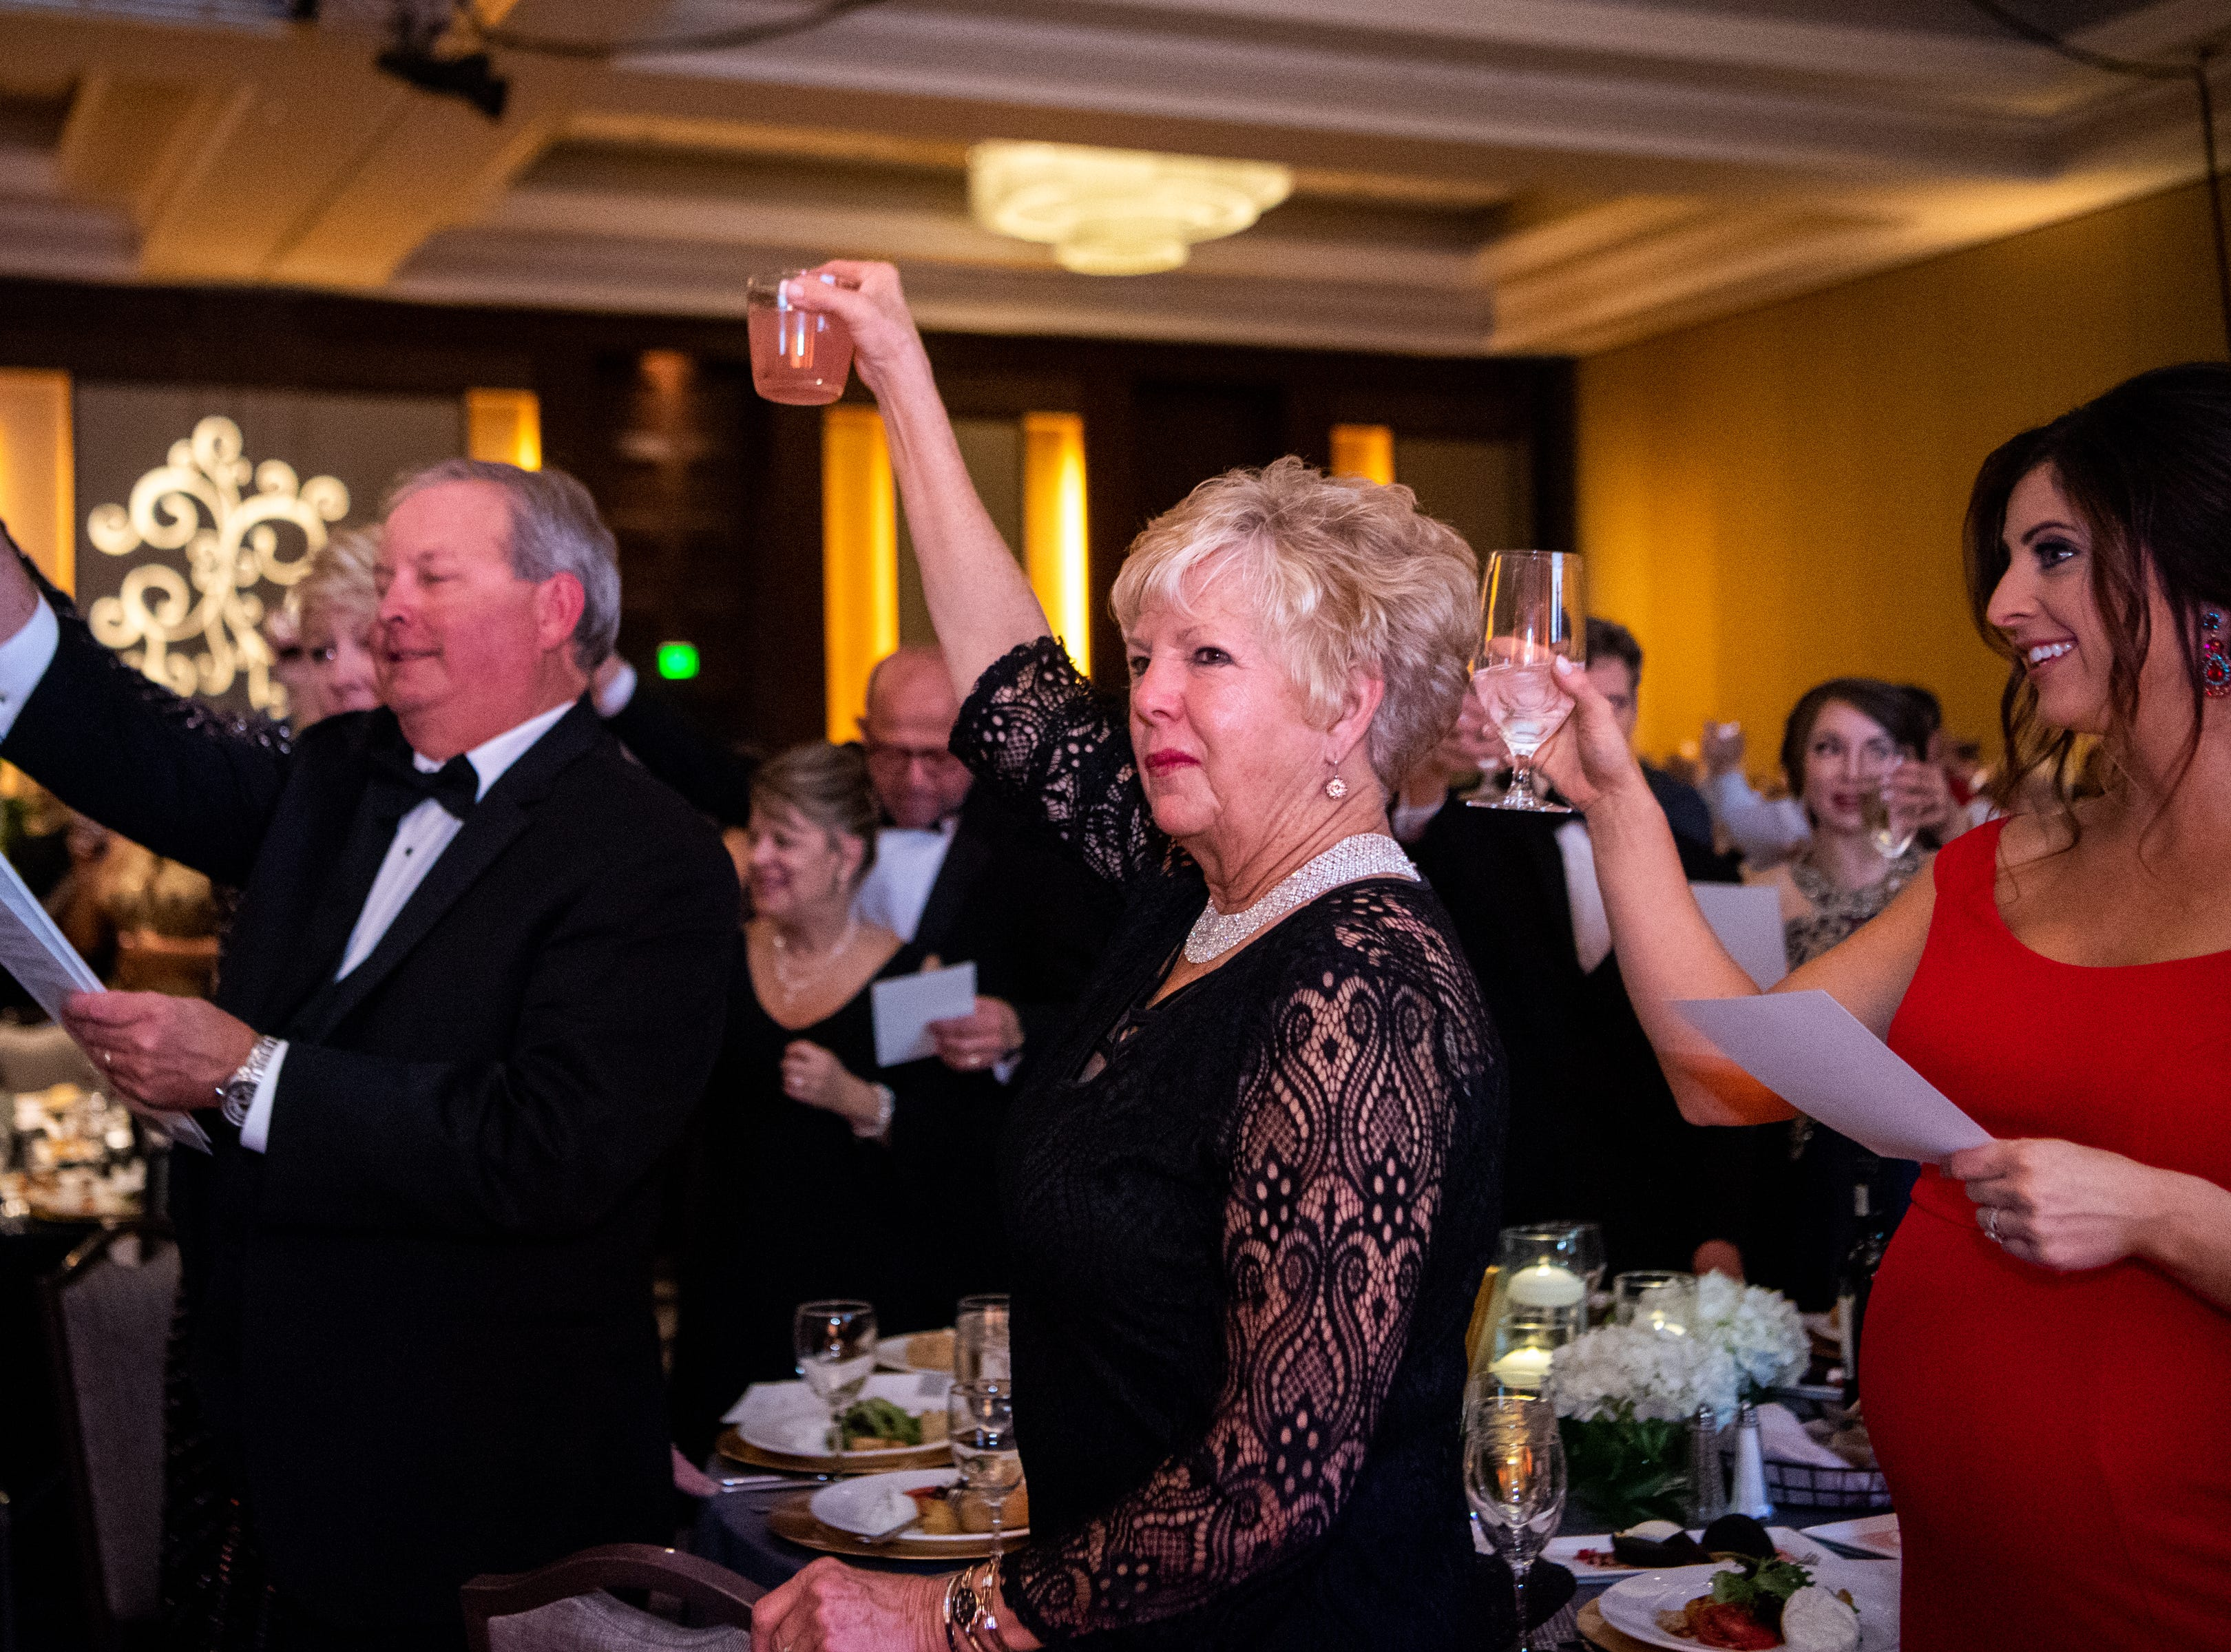 Attendees raise their glasses during Austin Peay State University's annual Candlelight Ball at the Omni Nashville Hotel Saturday, March 16, 2019, in Nashville, Tenn.